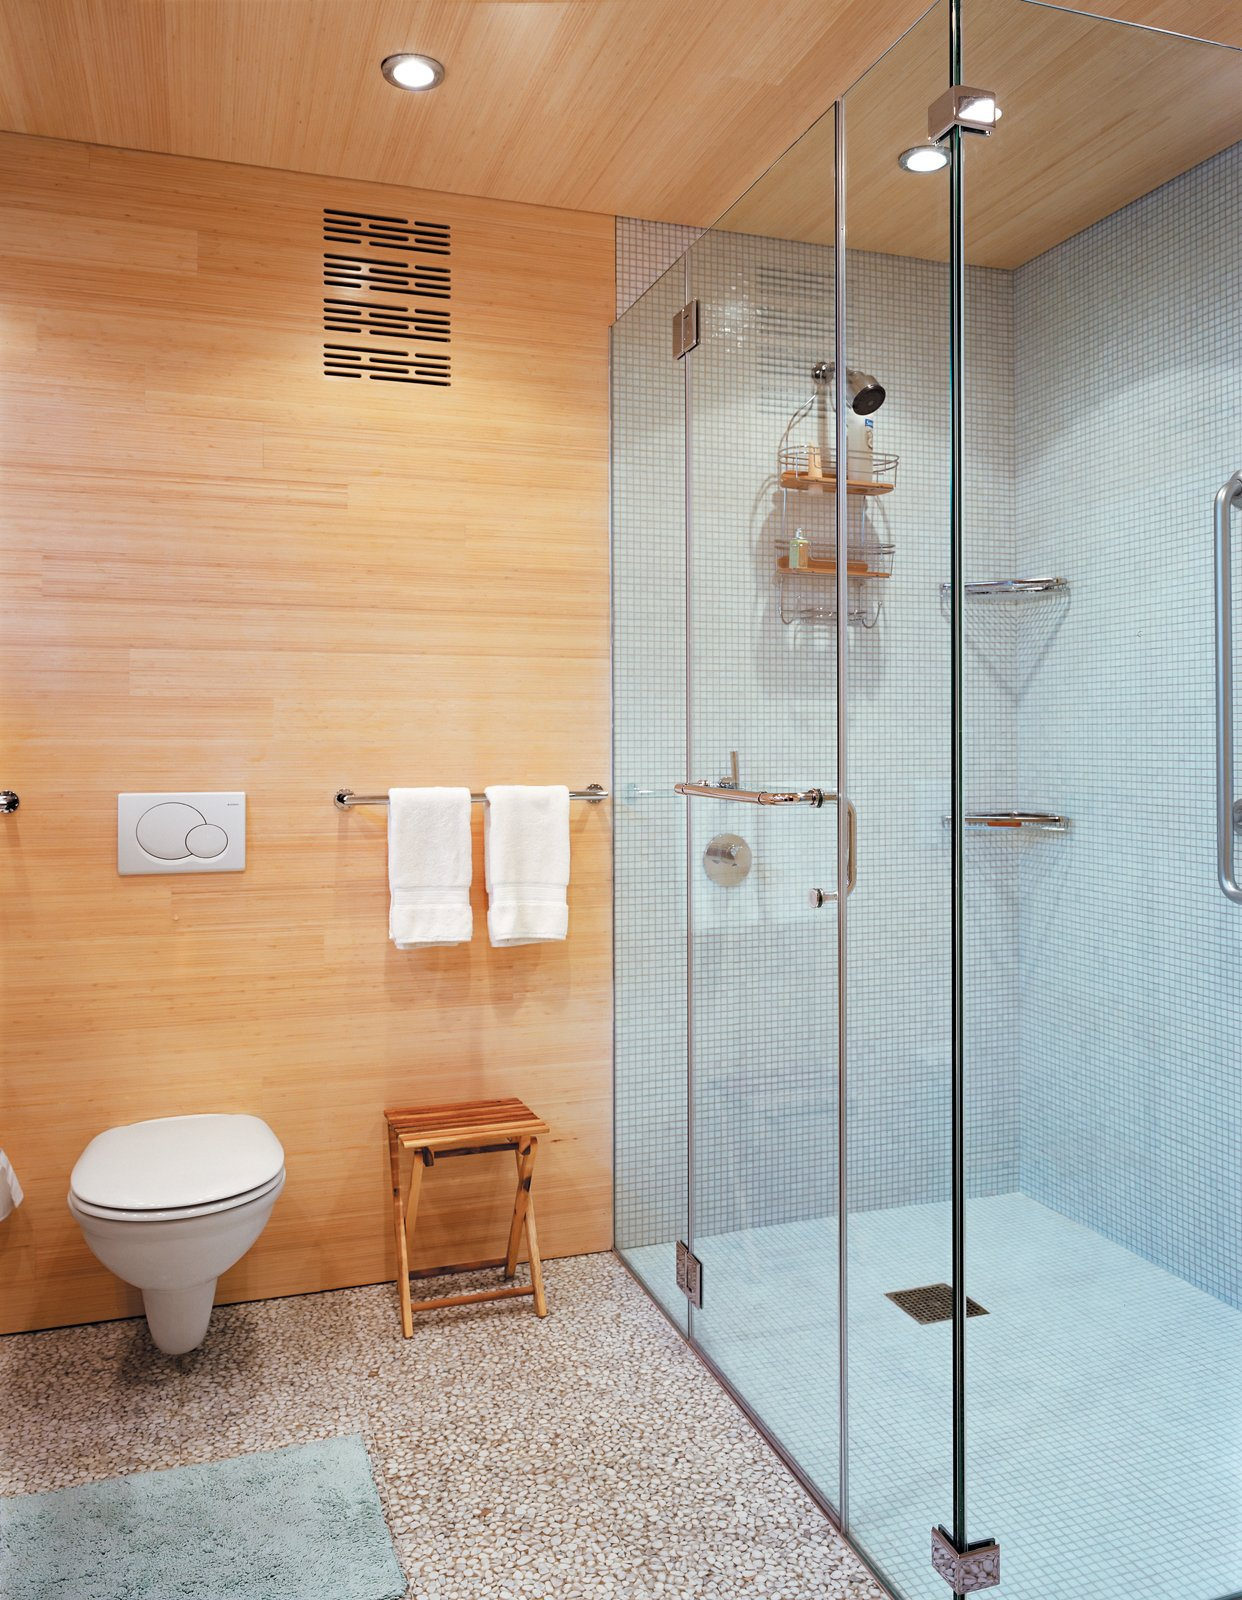 Bath Room, Terrazzo Floor, One Piece Toilet, Recessed Lighting, Enclosed Shower, and Ceramic Tile Wall The floors, walls, and ceilings are coated in FSC-Certified laminated bleached bamboo.  Photo 7 of 10 in Striking Angular Cottage in Connecticut